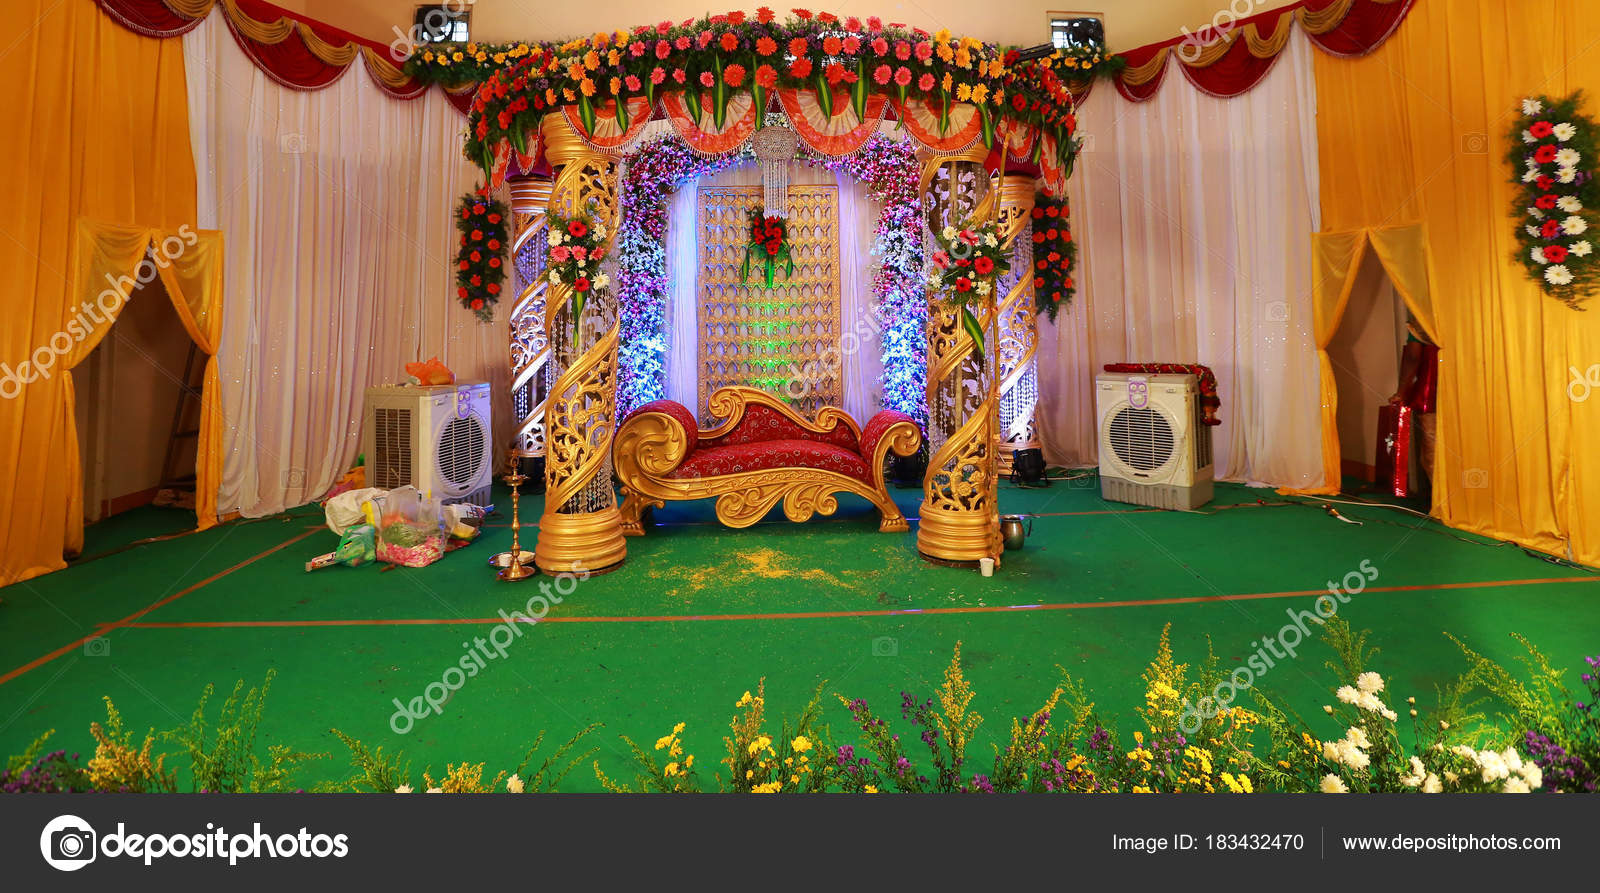 Indian wedding stage decorations with interior design themes stock indian wedding stage decorations with interior design themes stock photo junglespirit Gallery